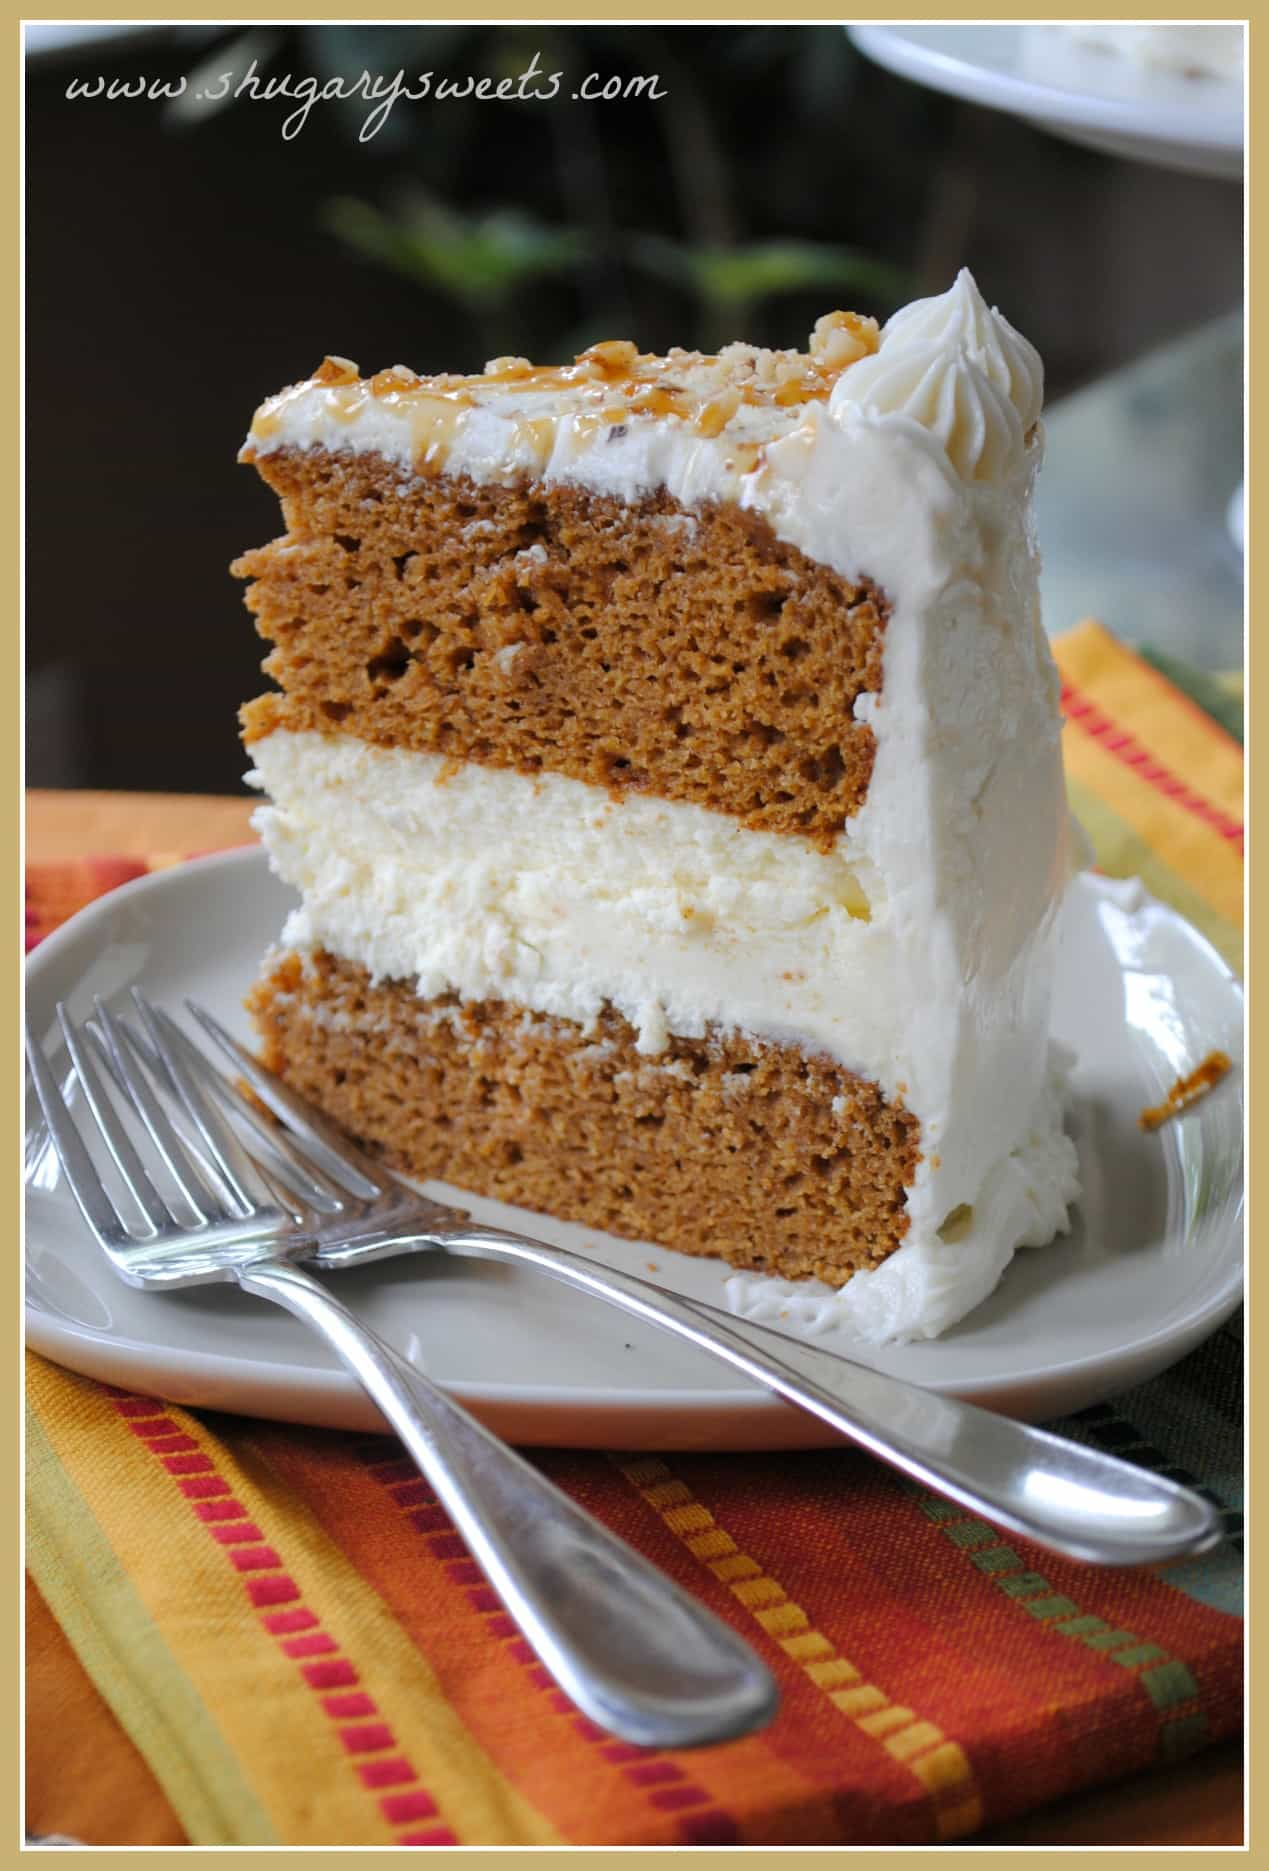 Pumpkin Chocolate Chip Cake Recipe With Cream Cheese Frosting